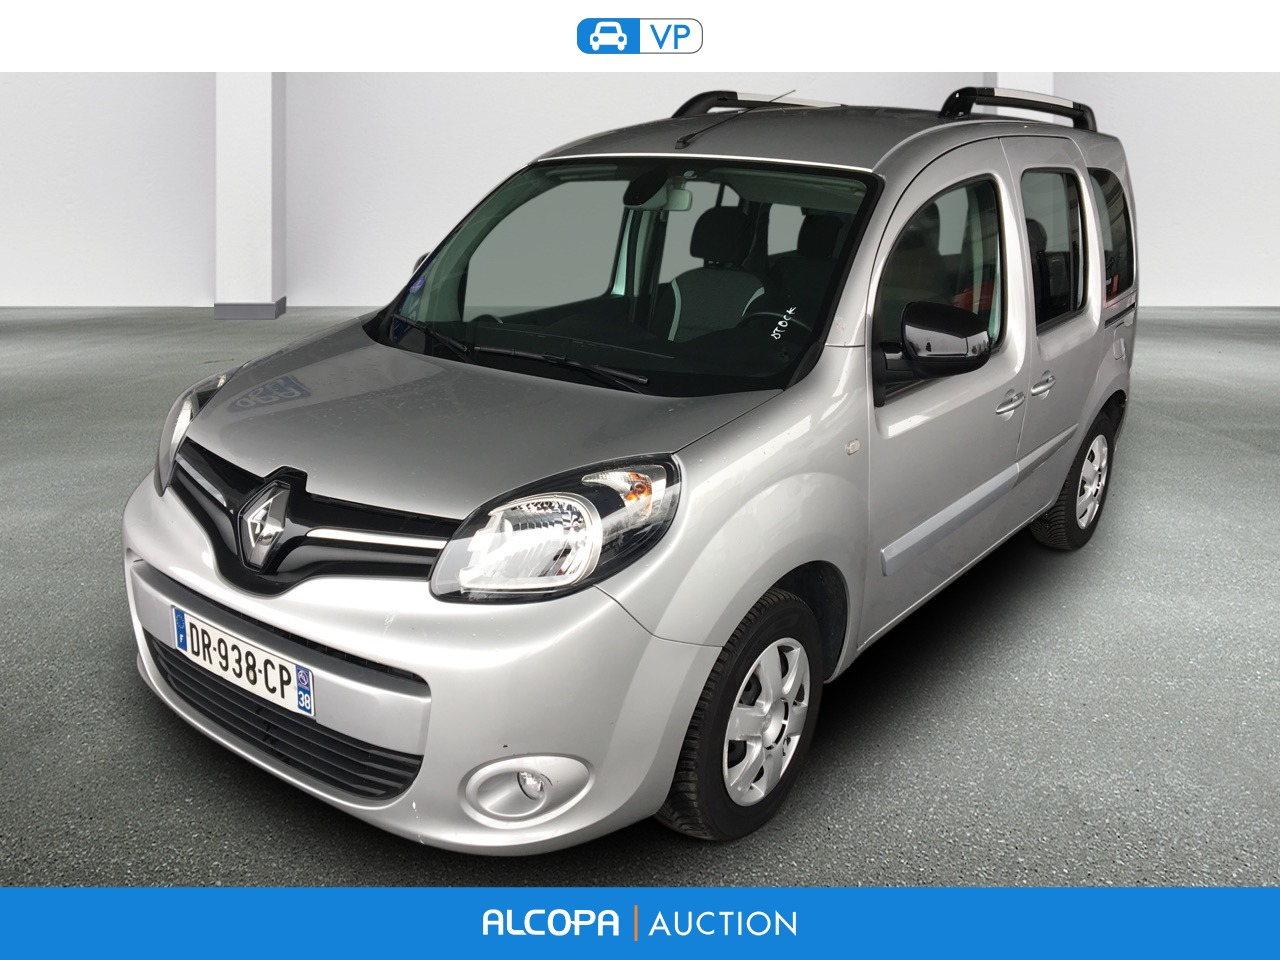 renault kangoo 02 2013 kangoo tce 115 energy intens alcopa auction. Black Bedroom Furniture Sets. Home Design Ideas